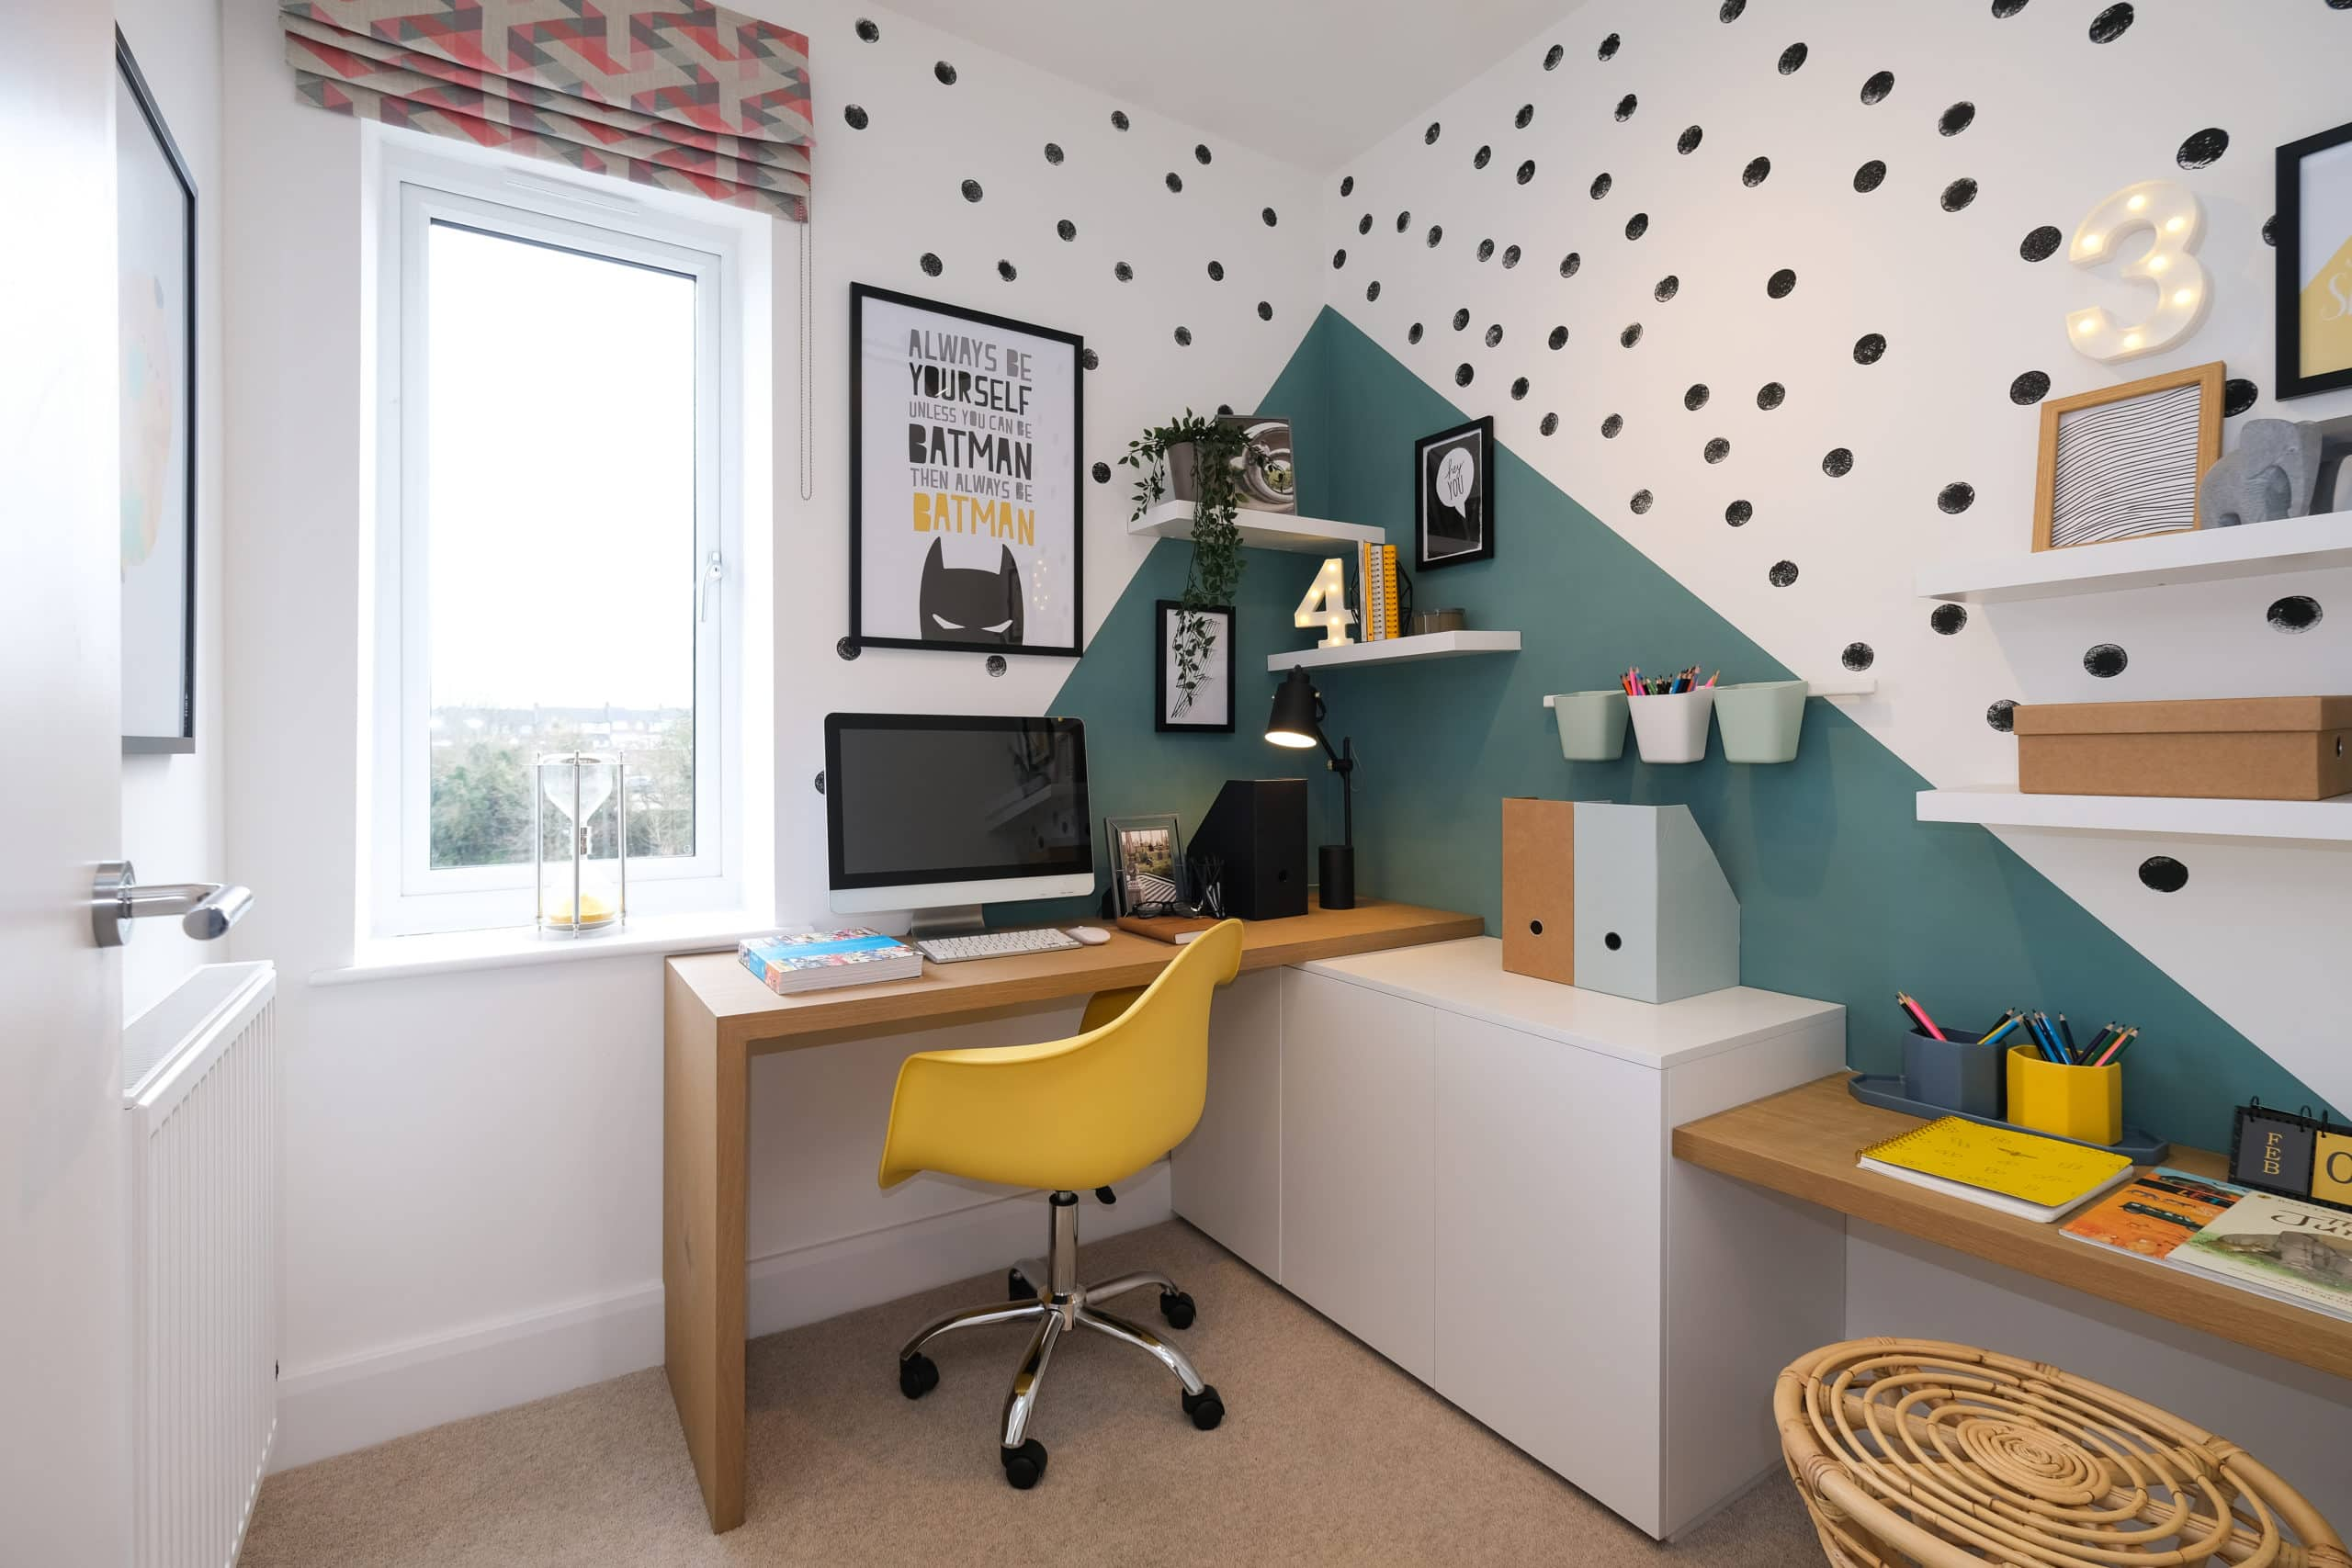 Study area at Catalyst's The Printworks - Shared Ownership homes available on Share to Buy